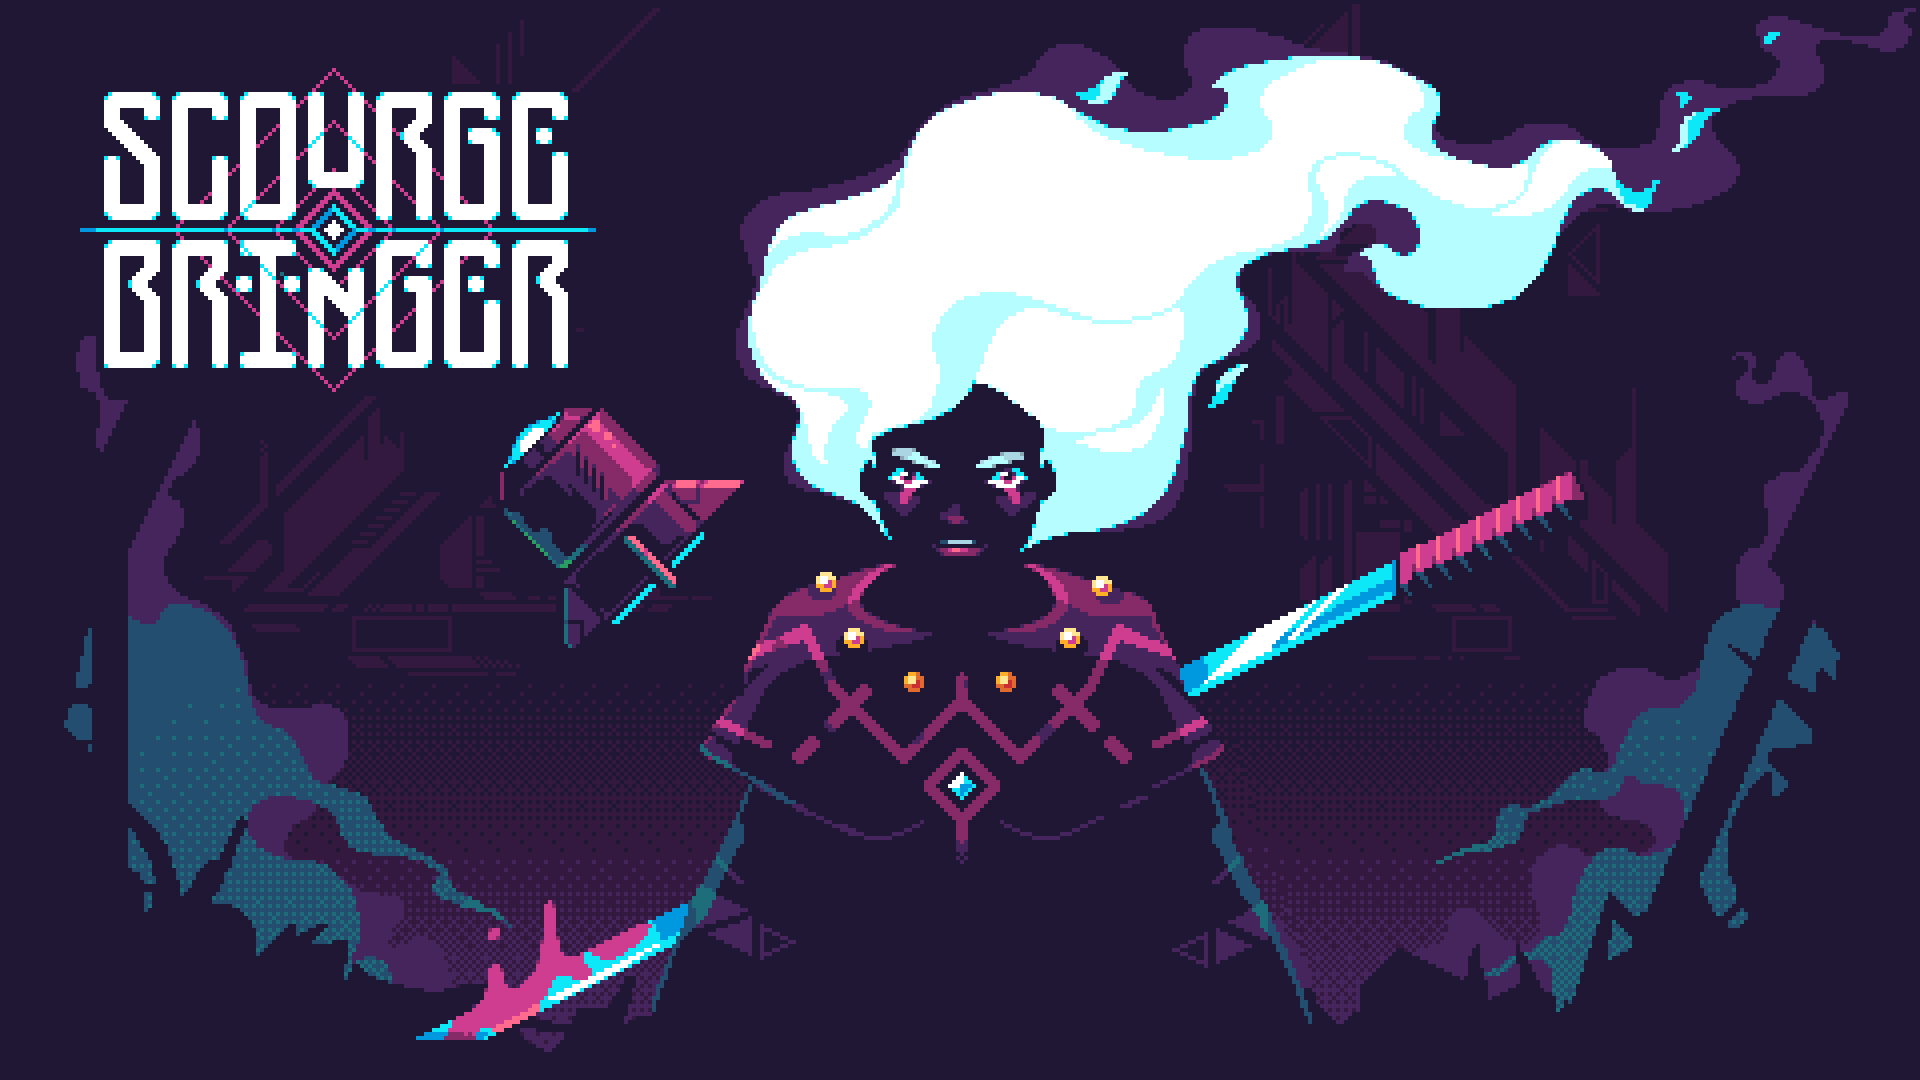 ScourgeBringer Supporter Pack standalone DLC (NOT THE FULL GAME)